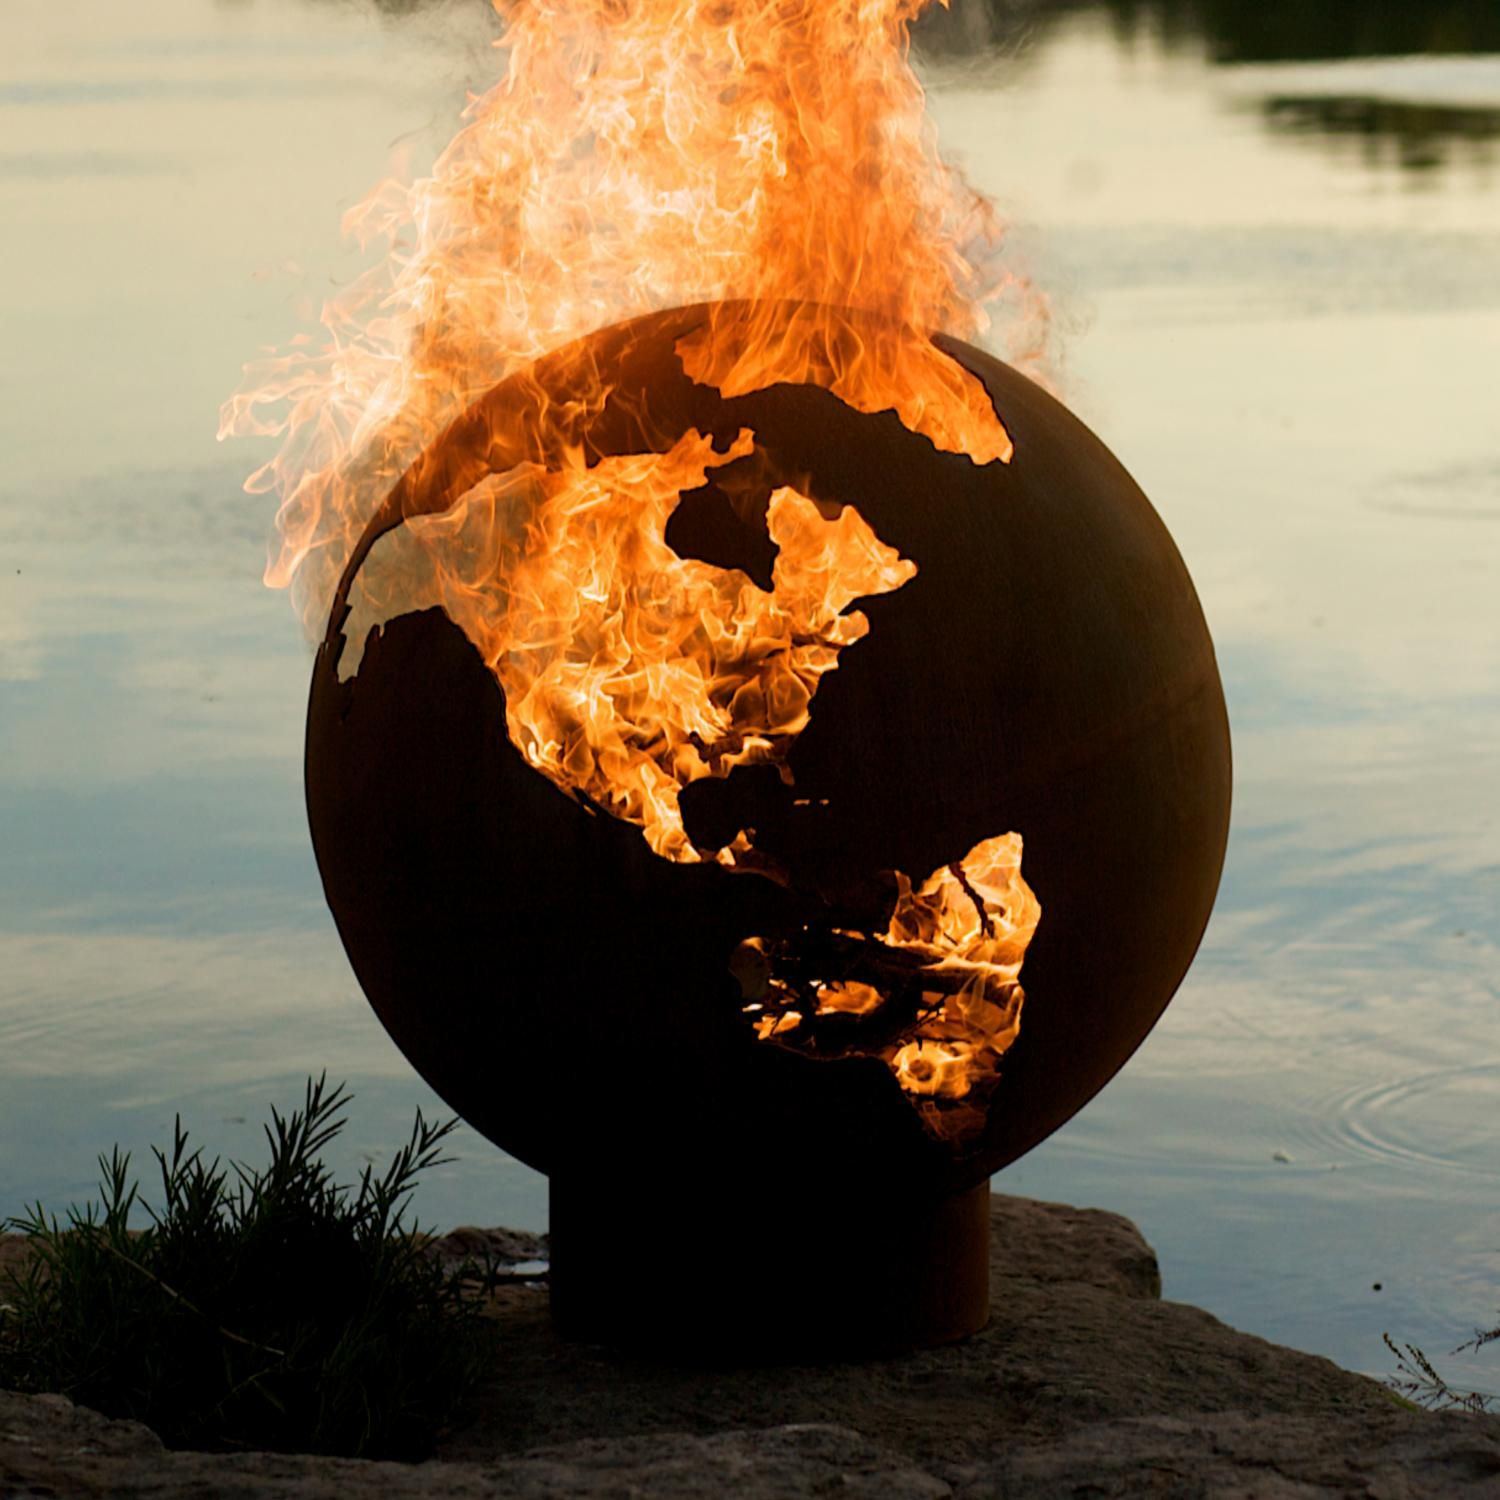 Marvelous Unique Globe 36 Inch Handmade Wood Burning Steel Fire Pit   Third Rock By Fire  Pit Art Photo Gallery